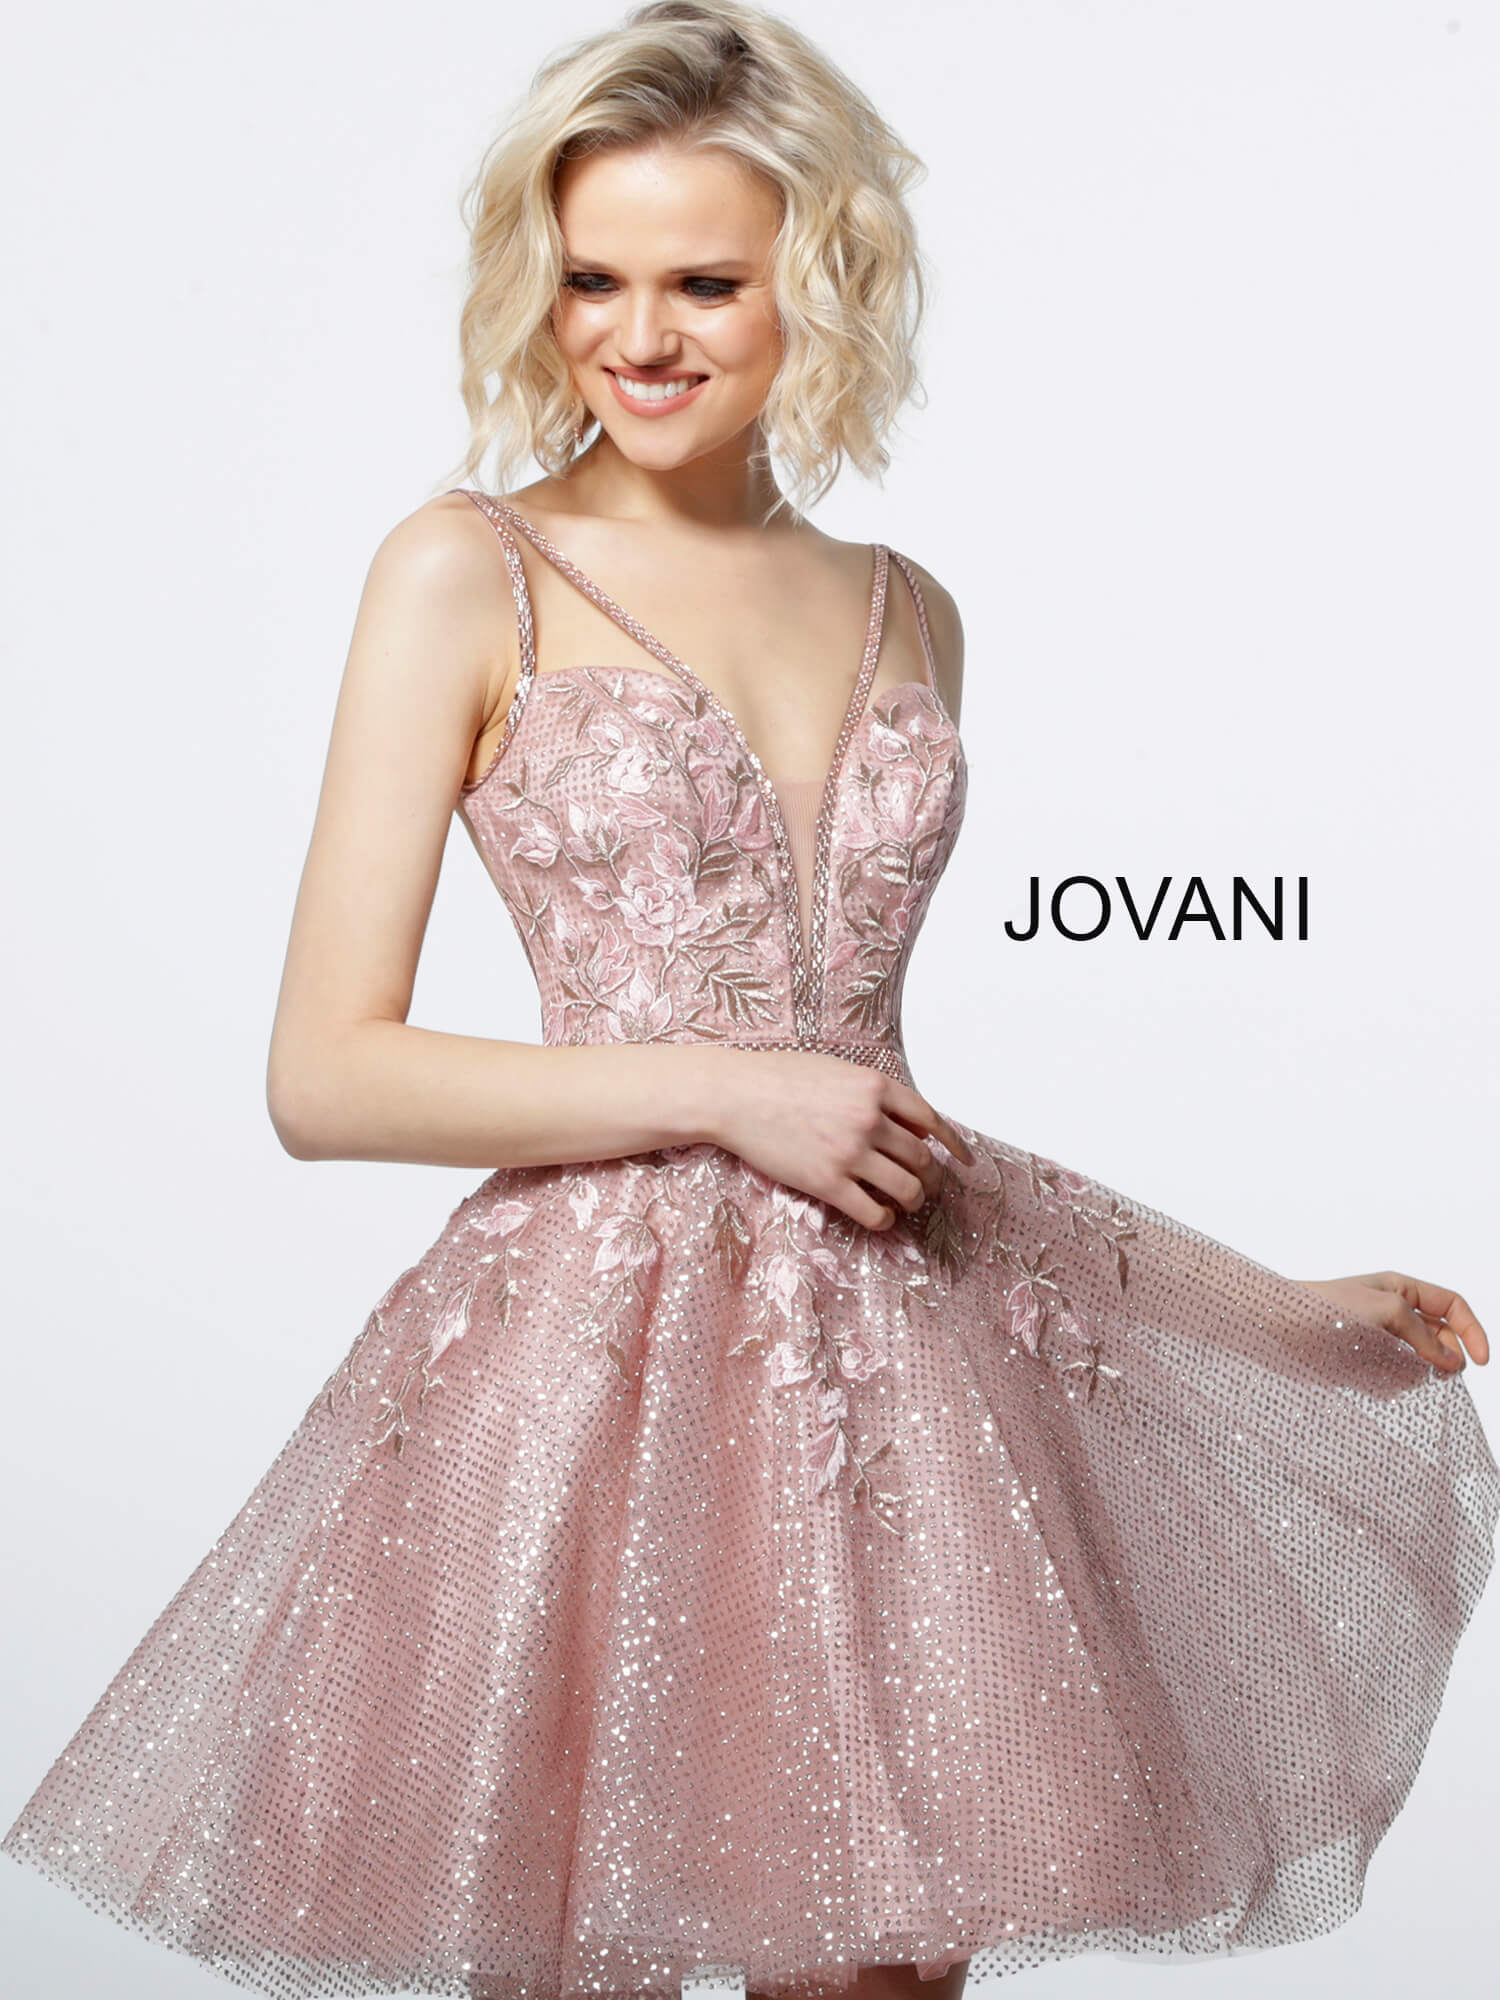 jovani Jovani 3654 Blush Plunging Neck Fit and Flare Cocktail Dress  on mobile 1